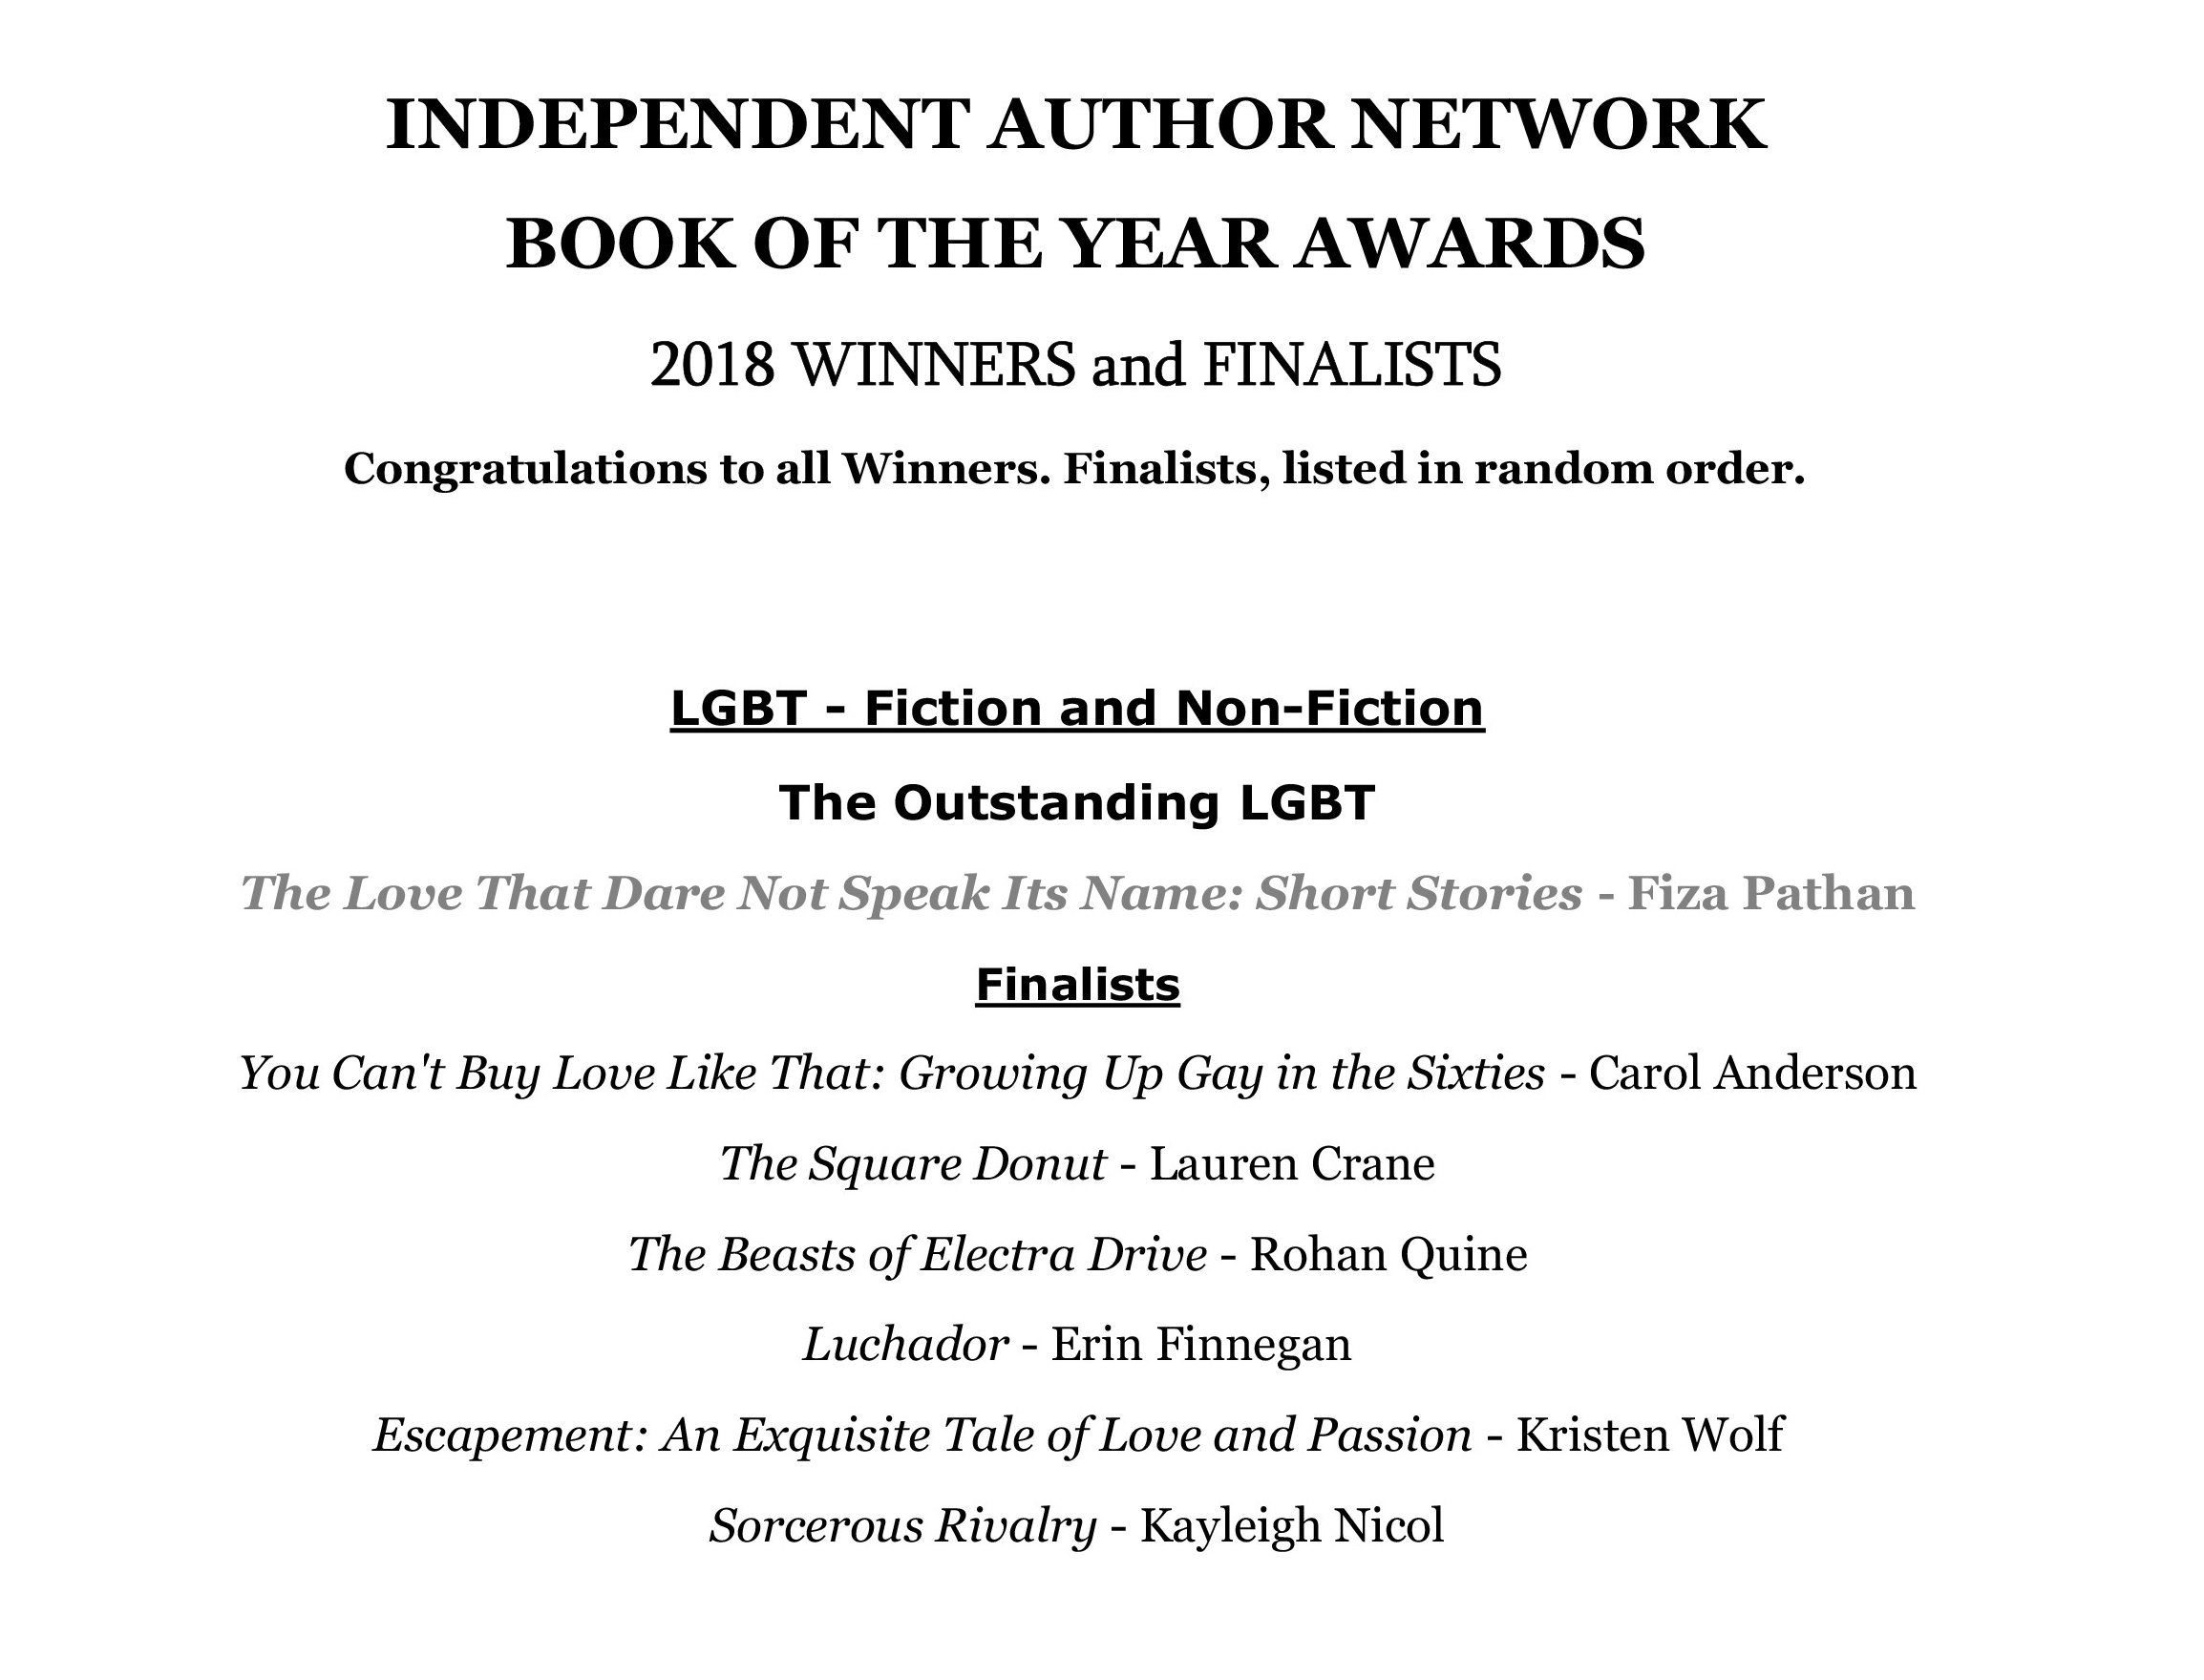 Rohan Quine's 'The Beasts of Electra Drive' as Finalist in IAN Book of the Year Awards 2018